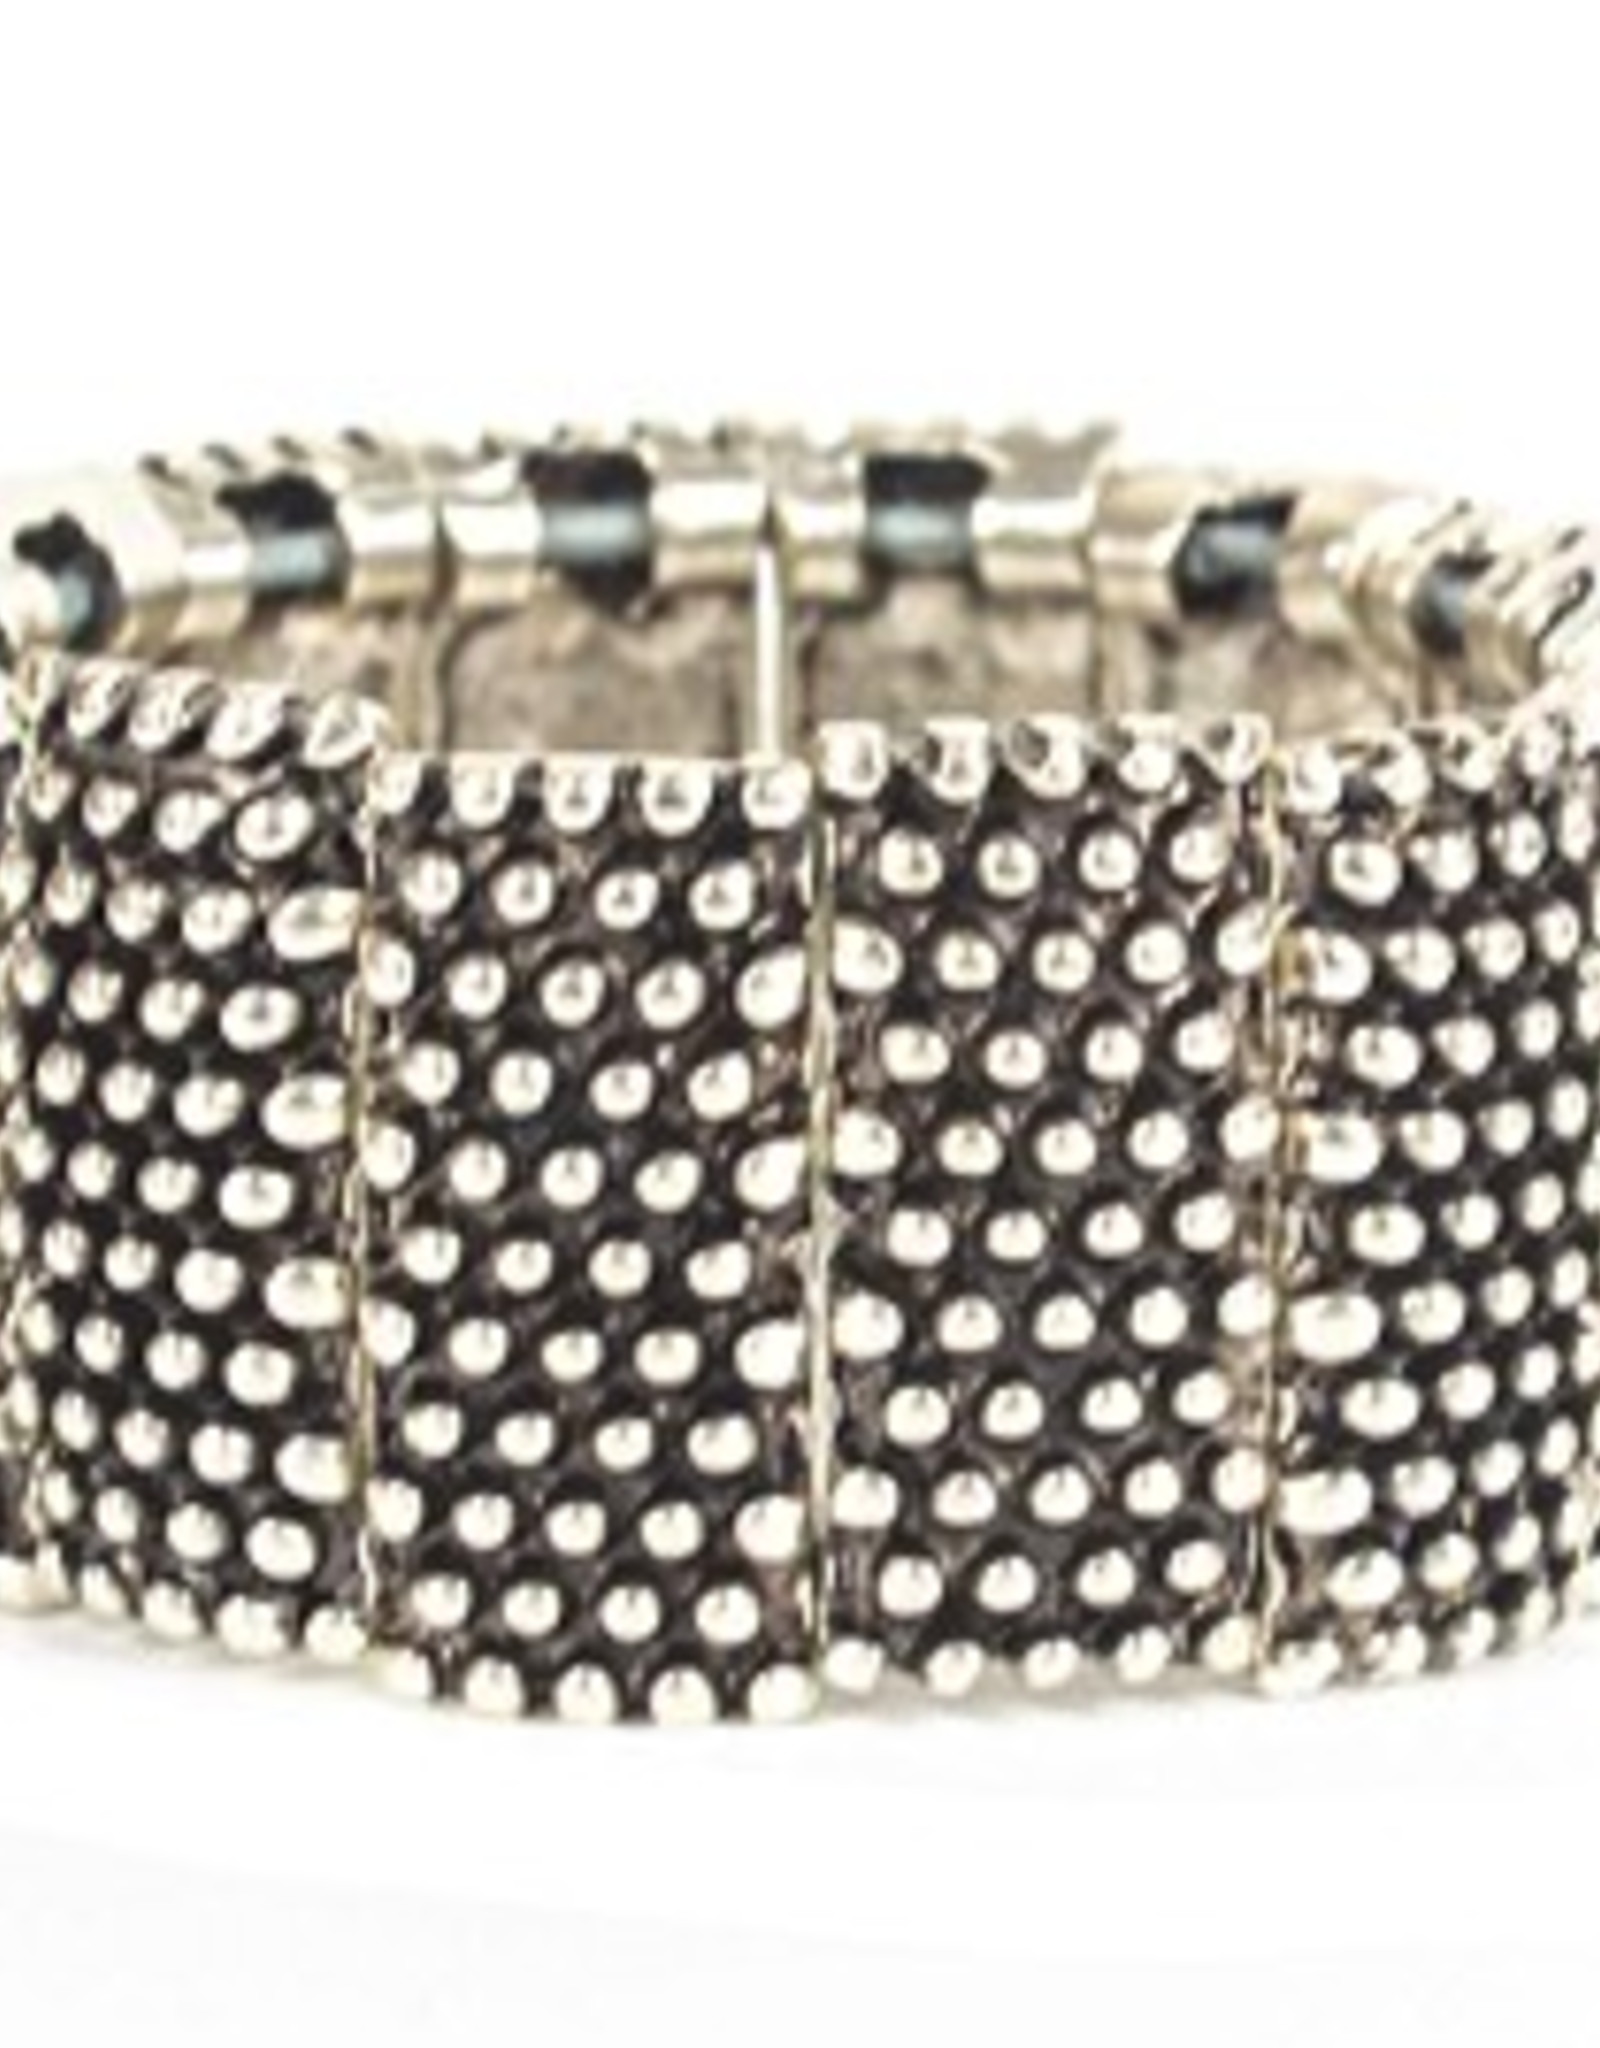 Turkey, Sterling Plated Patterned Bracelet